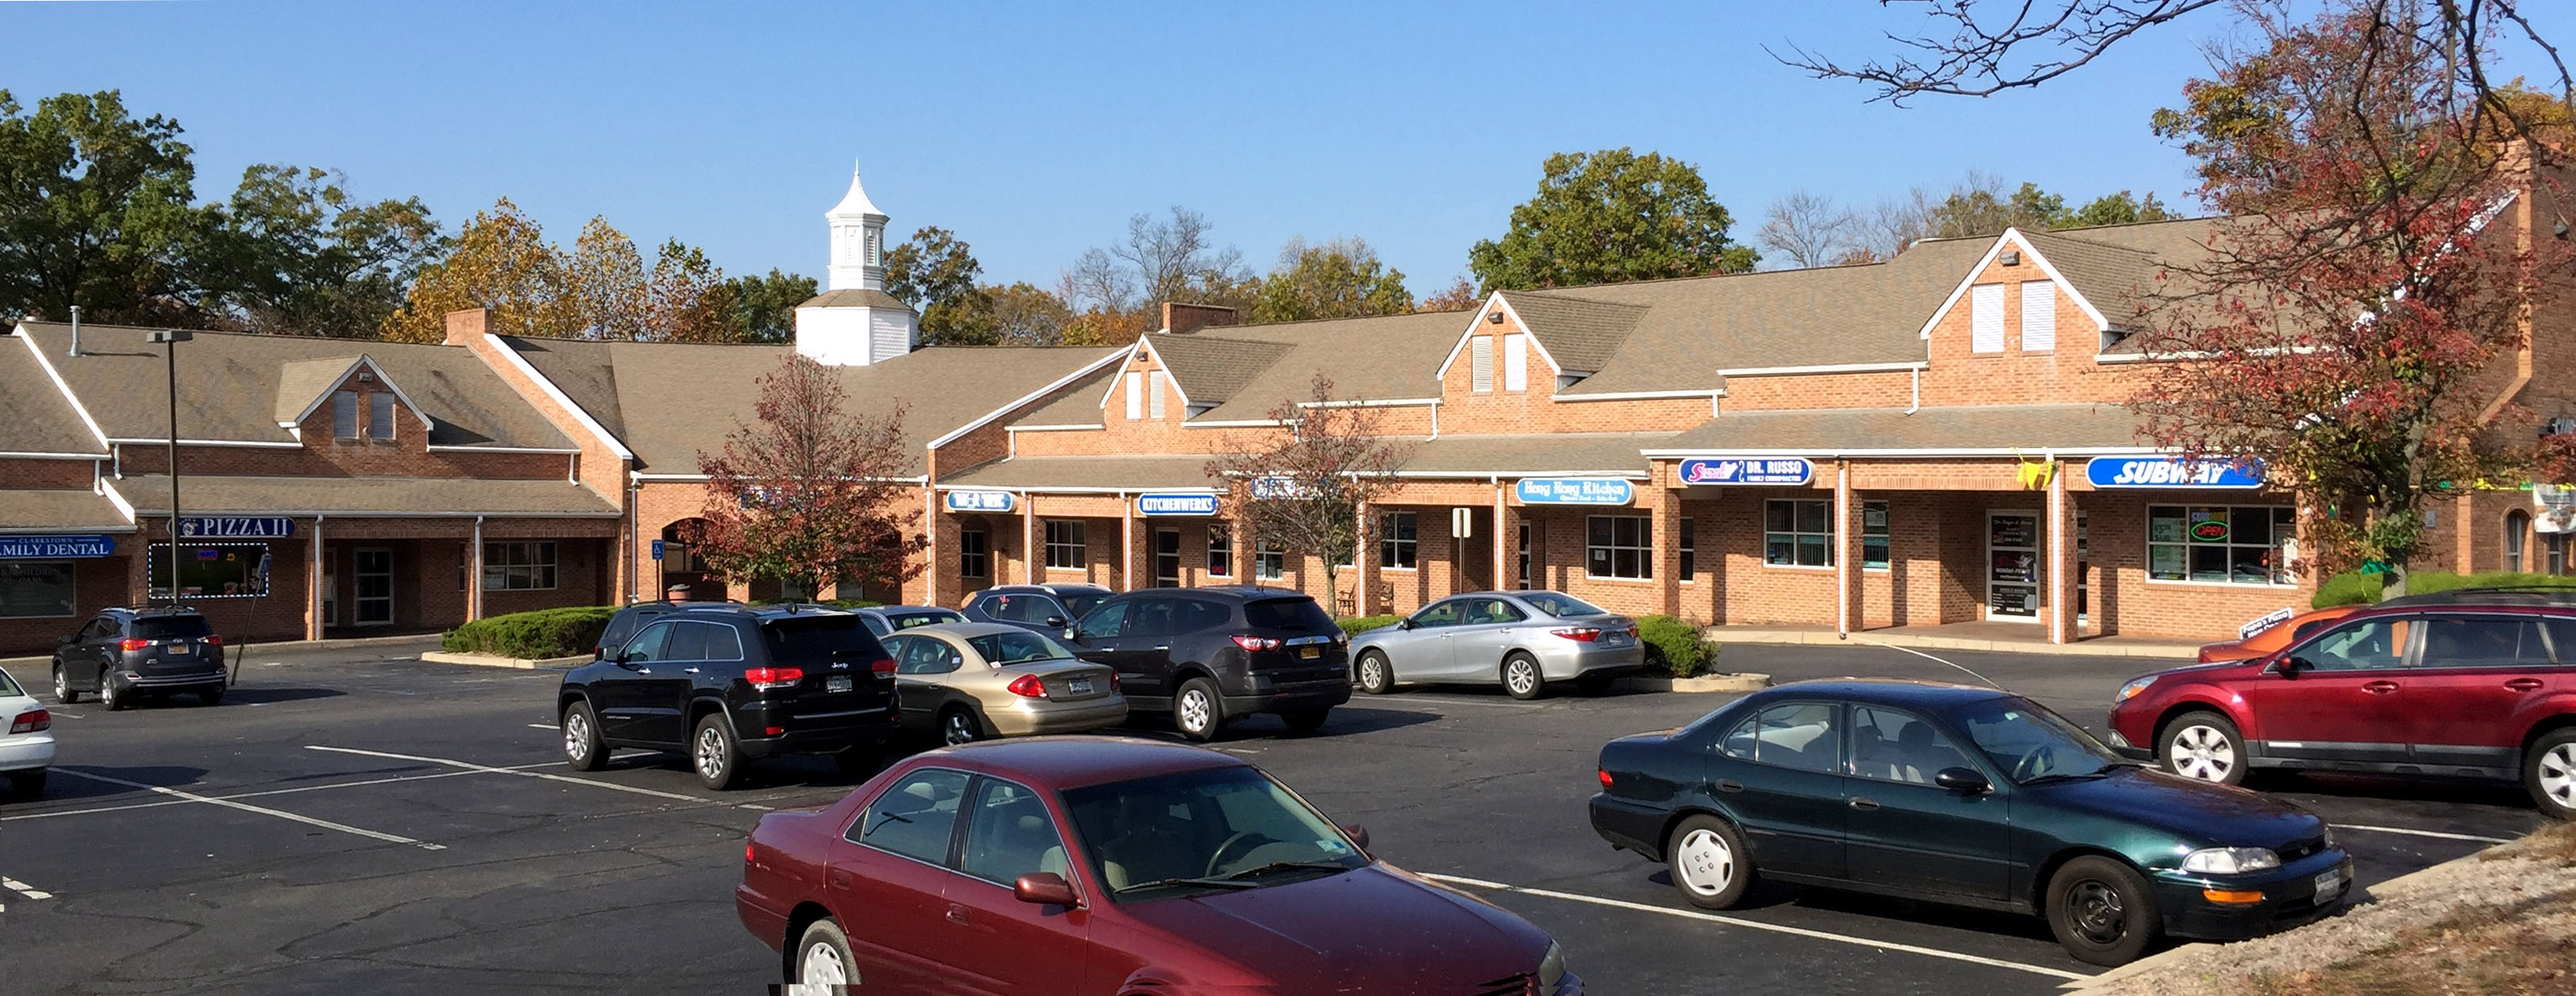 LichtensteinRE Has Sold a Shopping Center in Congers, NY for $4,000,000